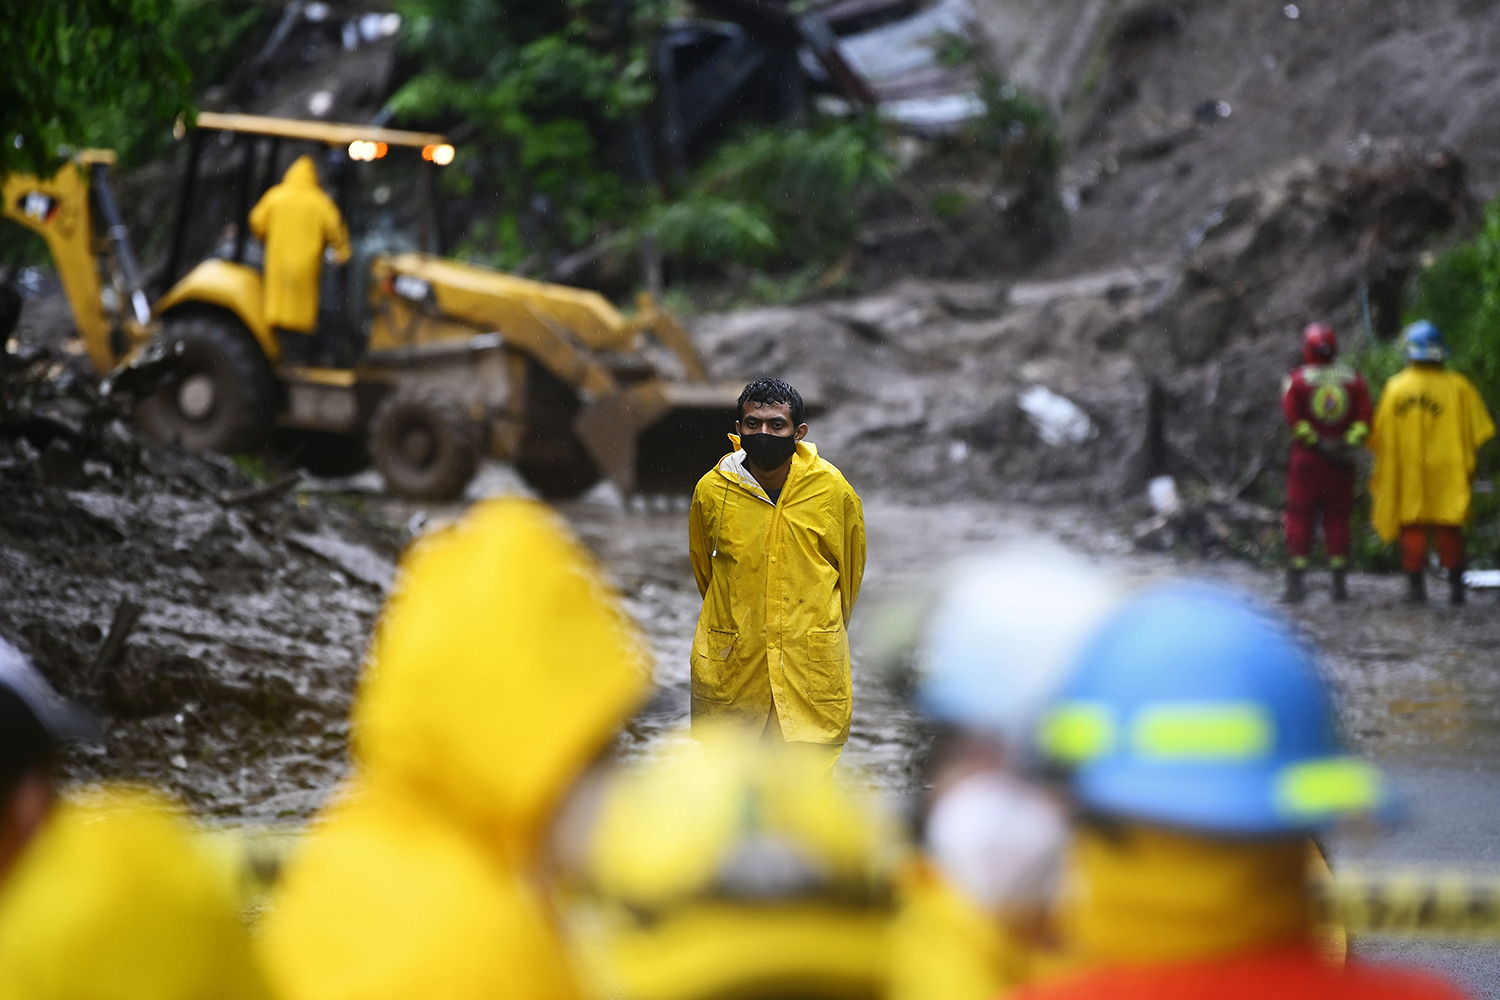 Rescuers and firefighters search for seven people who were buried by a landslide caused by Tropical Storm Cristobal in Santo Tomás, El Salvador, on June 3. MARVIN RECINOS/AFP via Getty Images